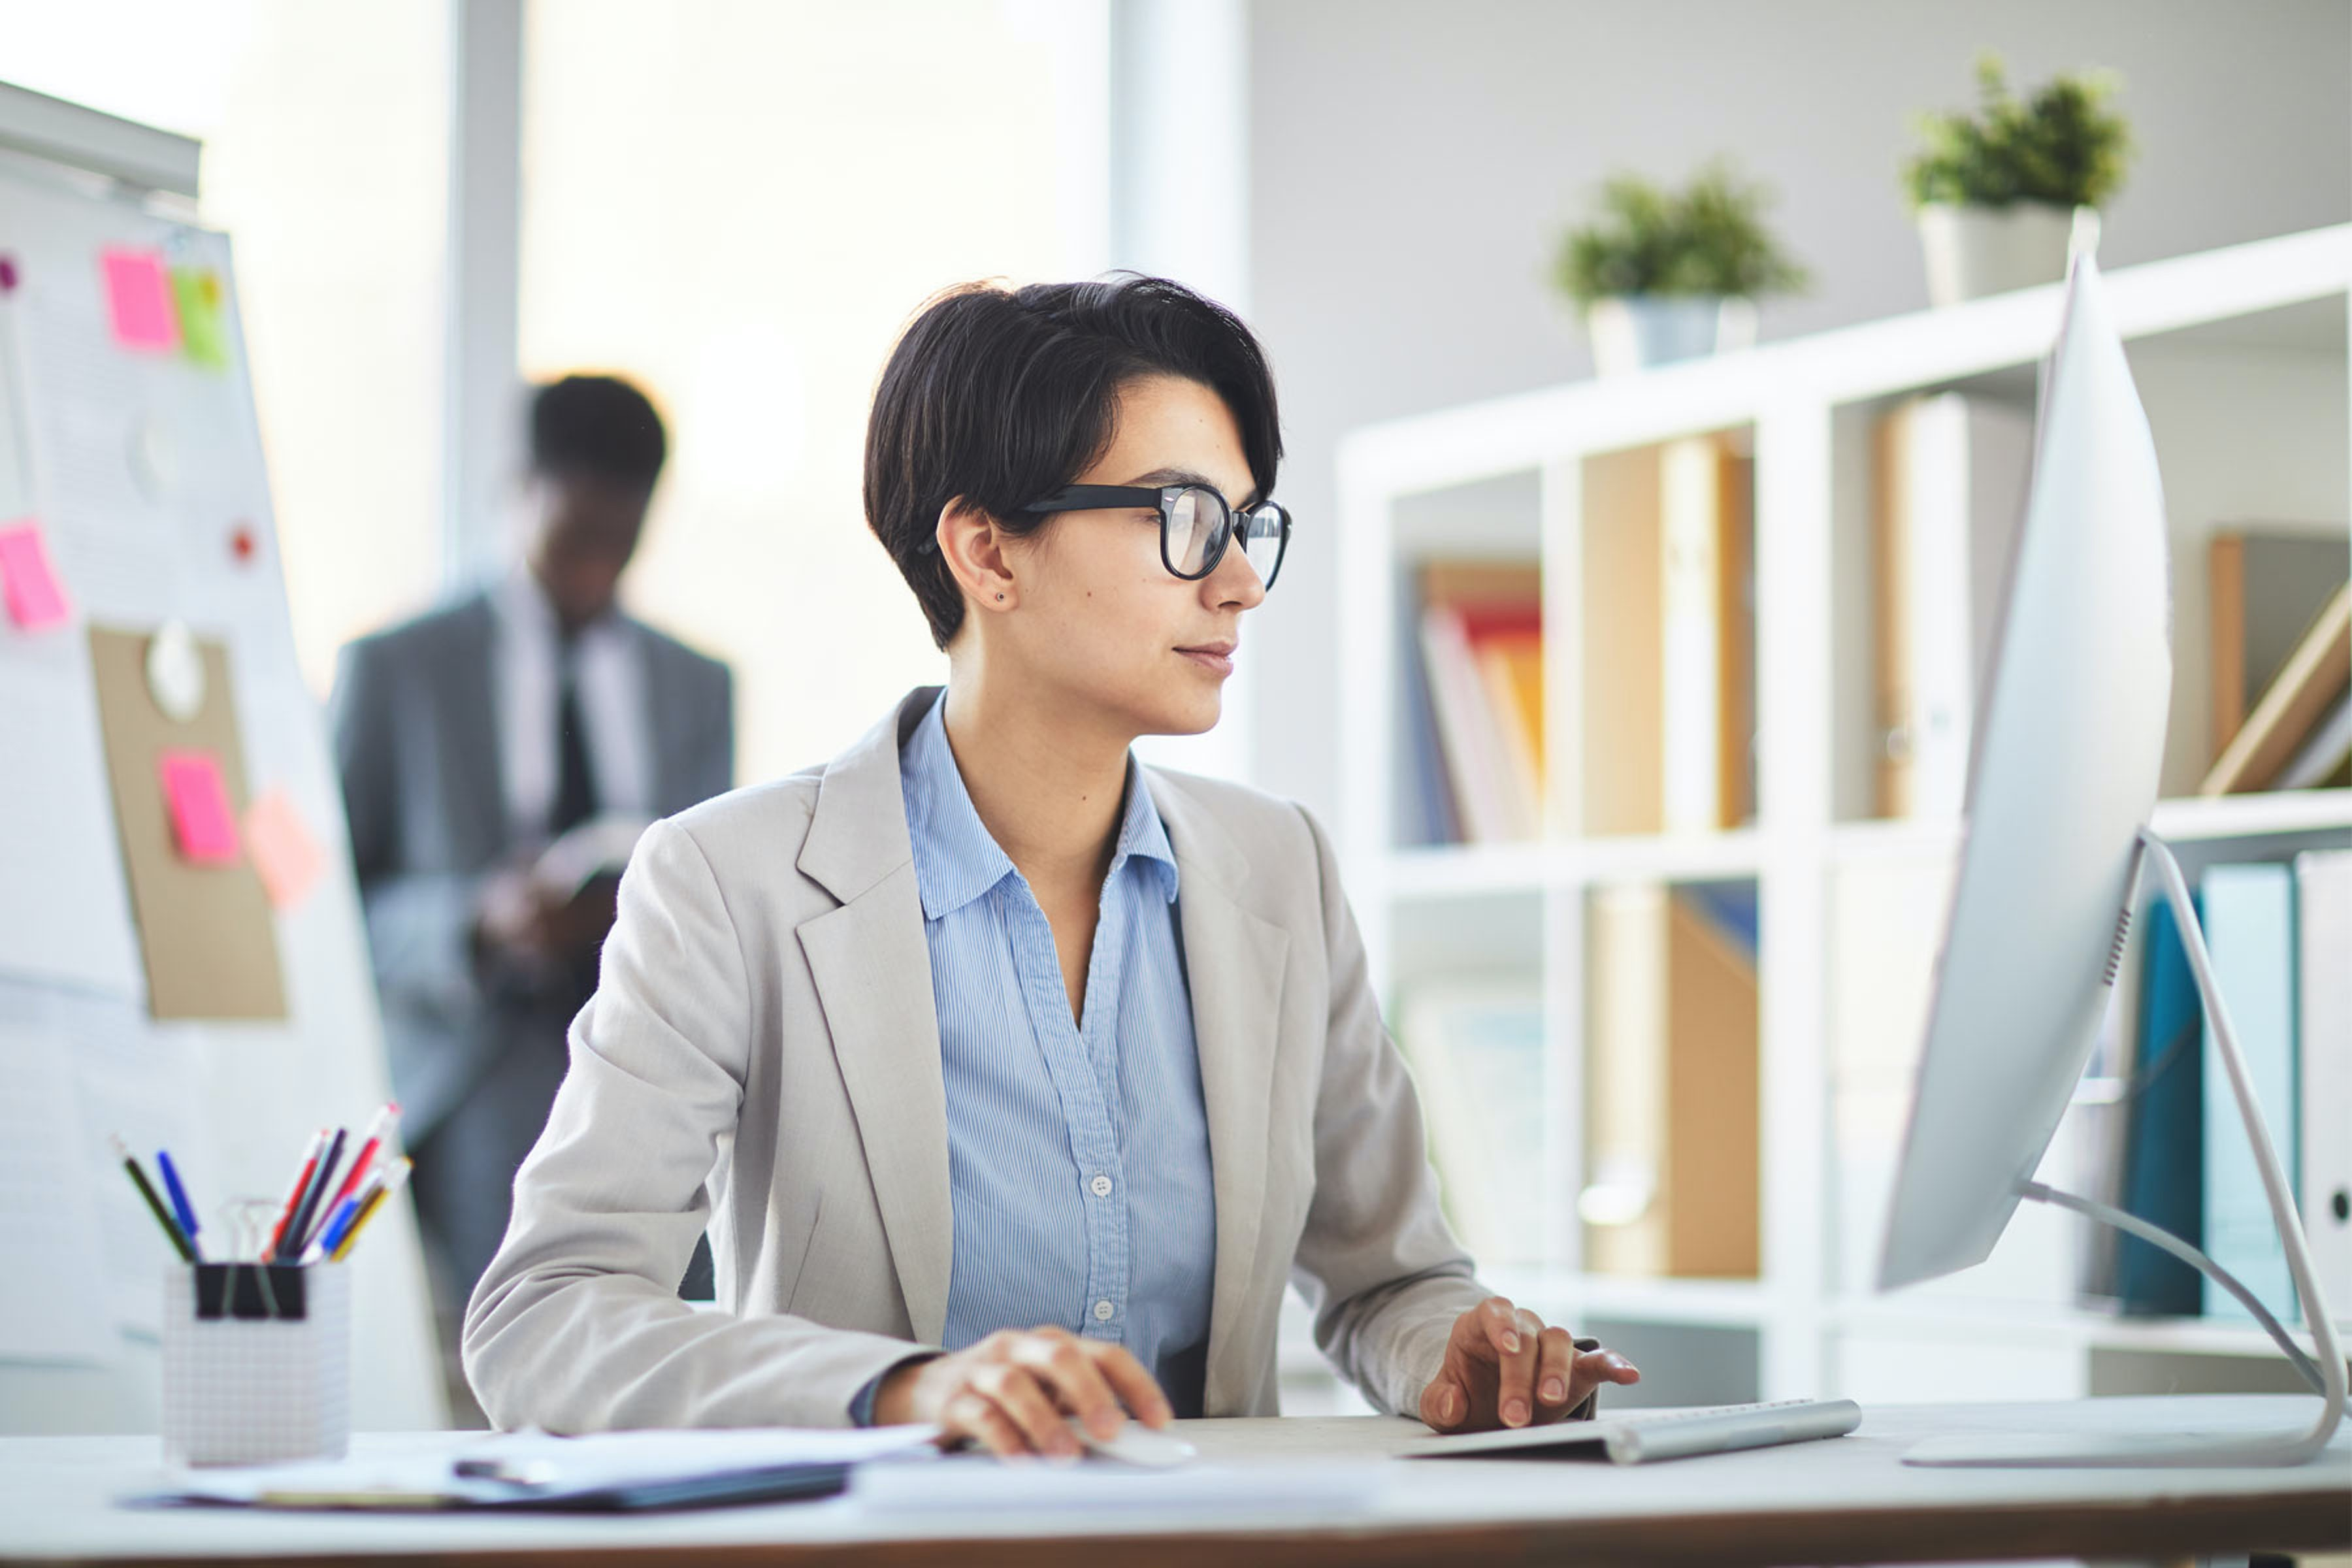 employee using computer at a desk in office environment